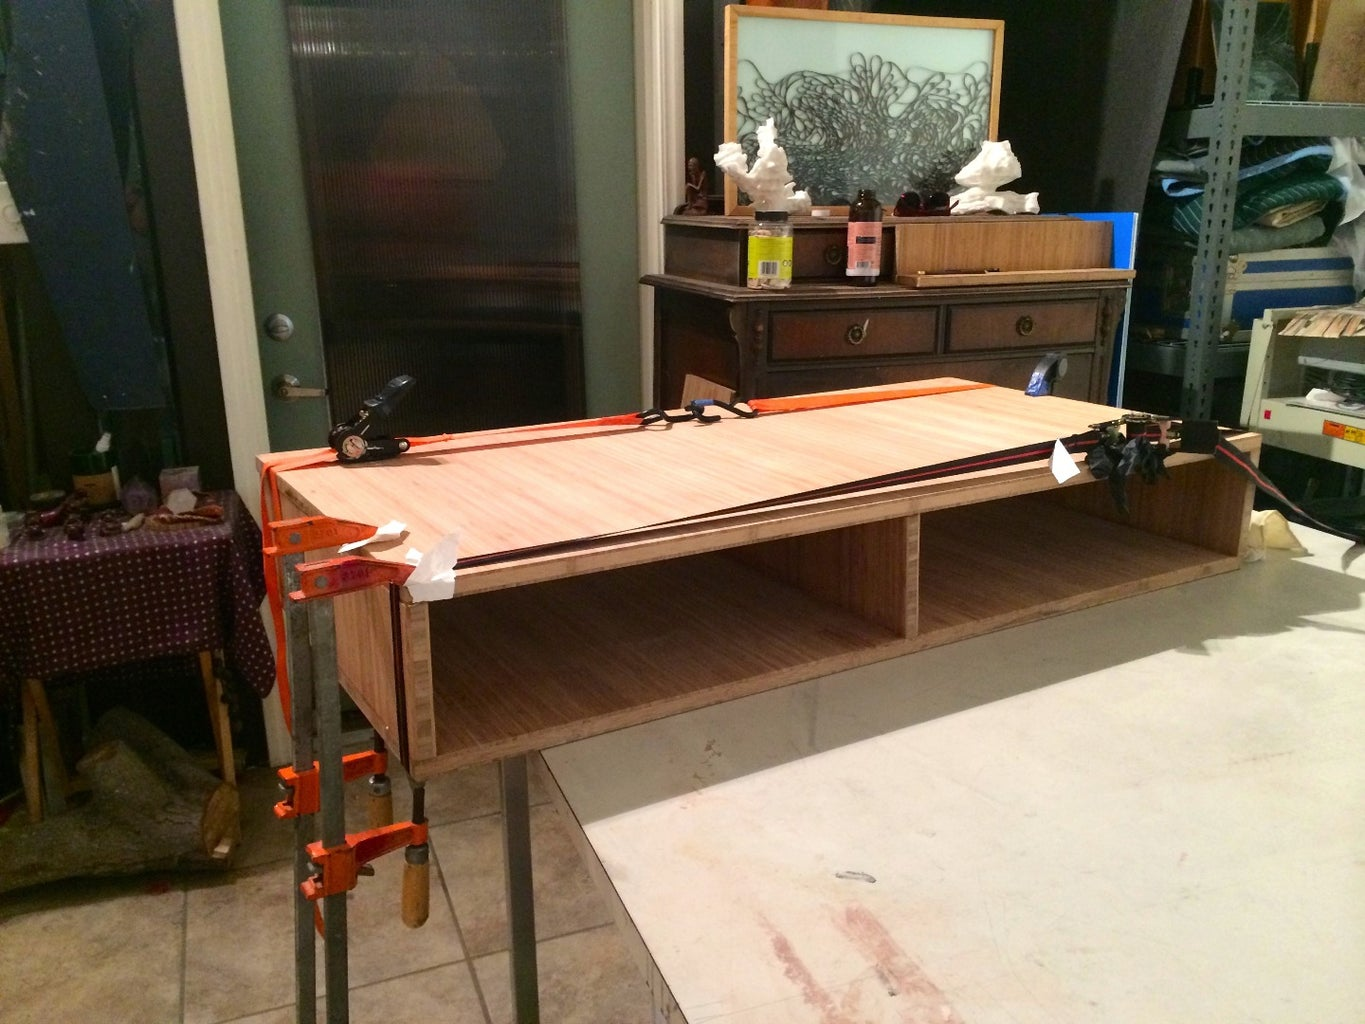 Dry Assembly, Glue and Clamping